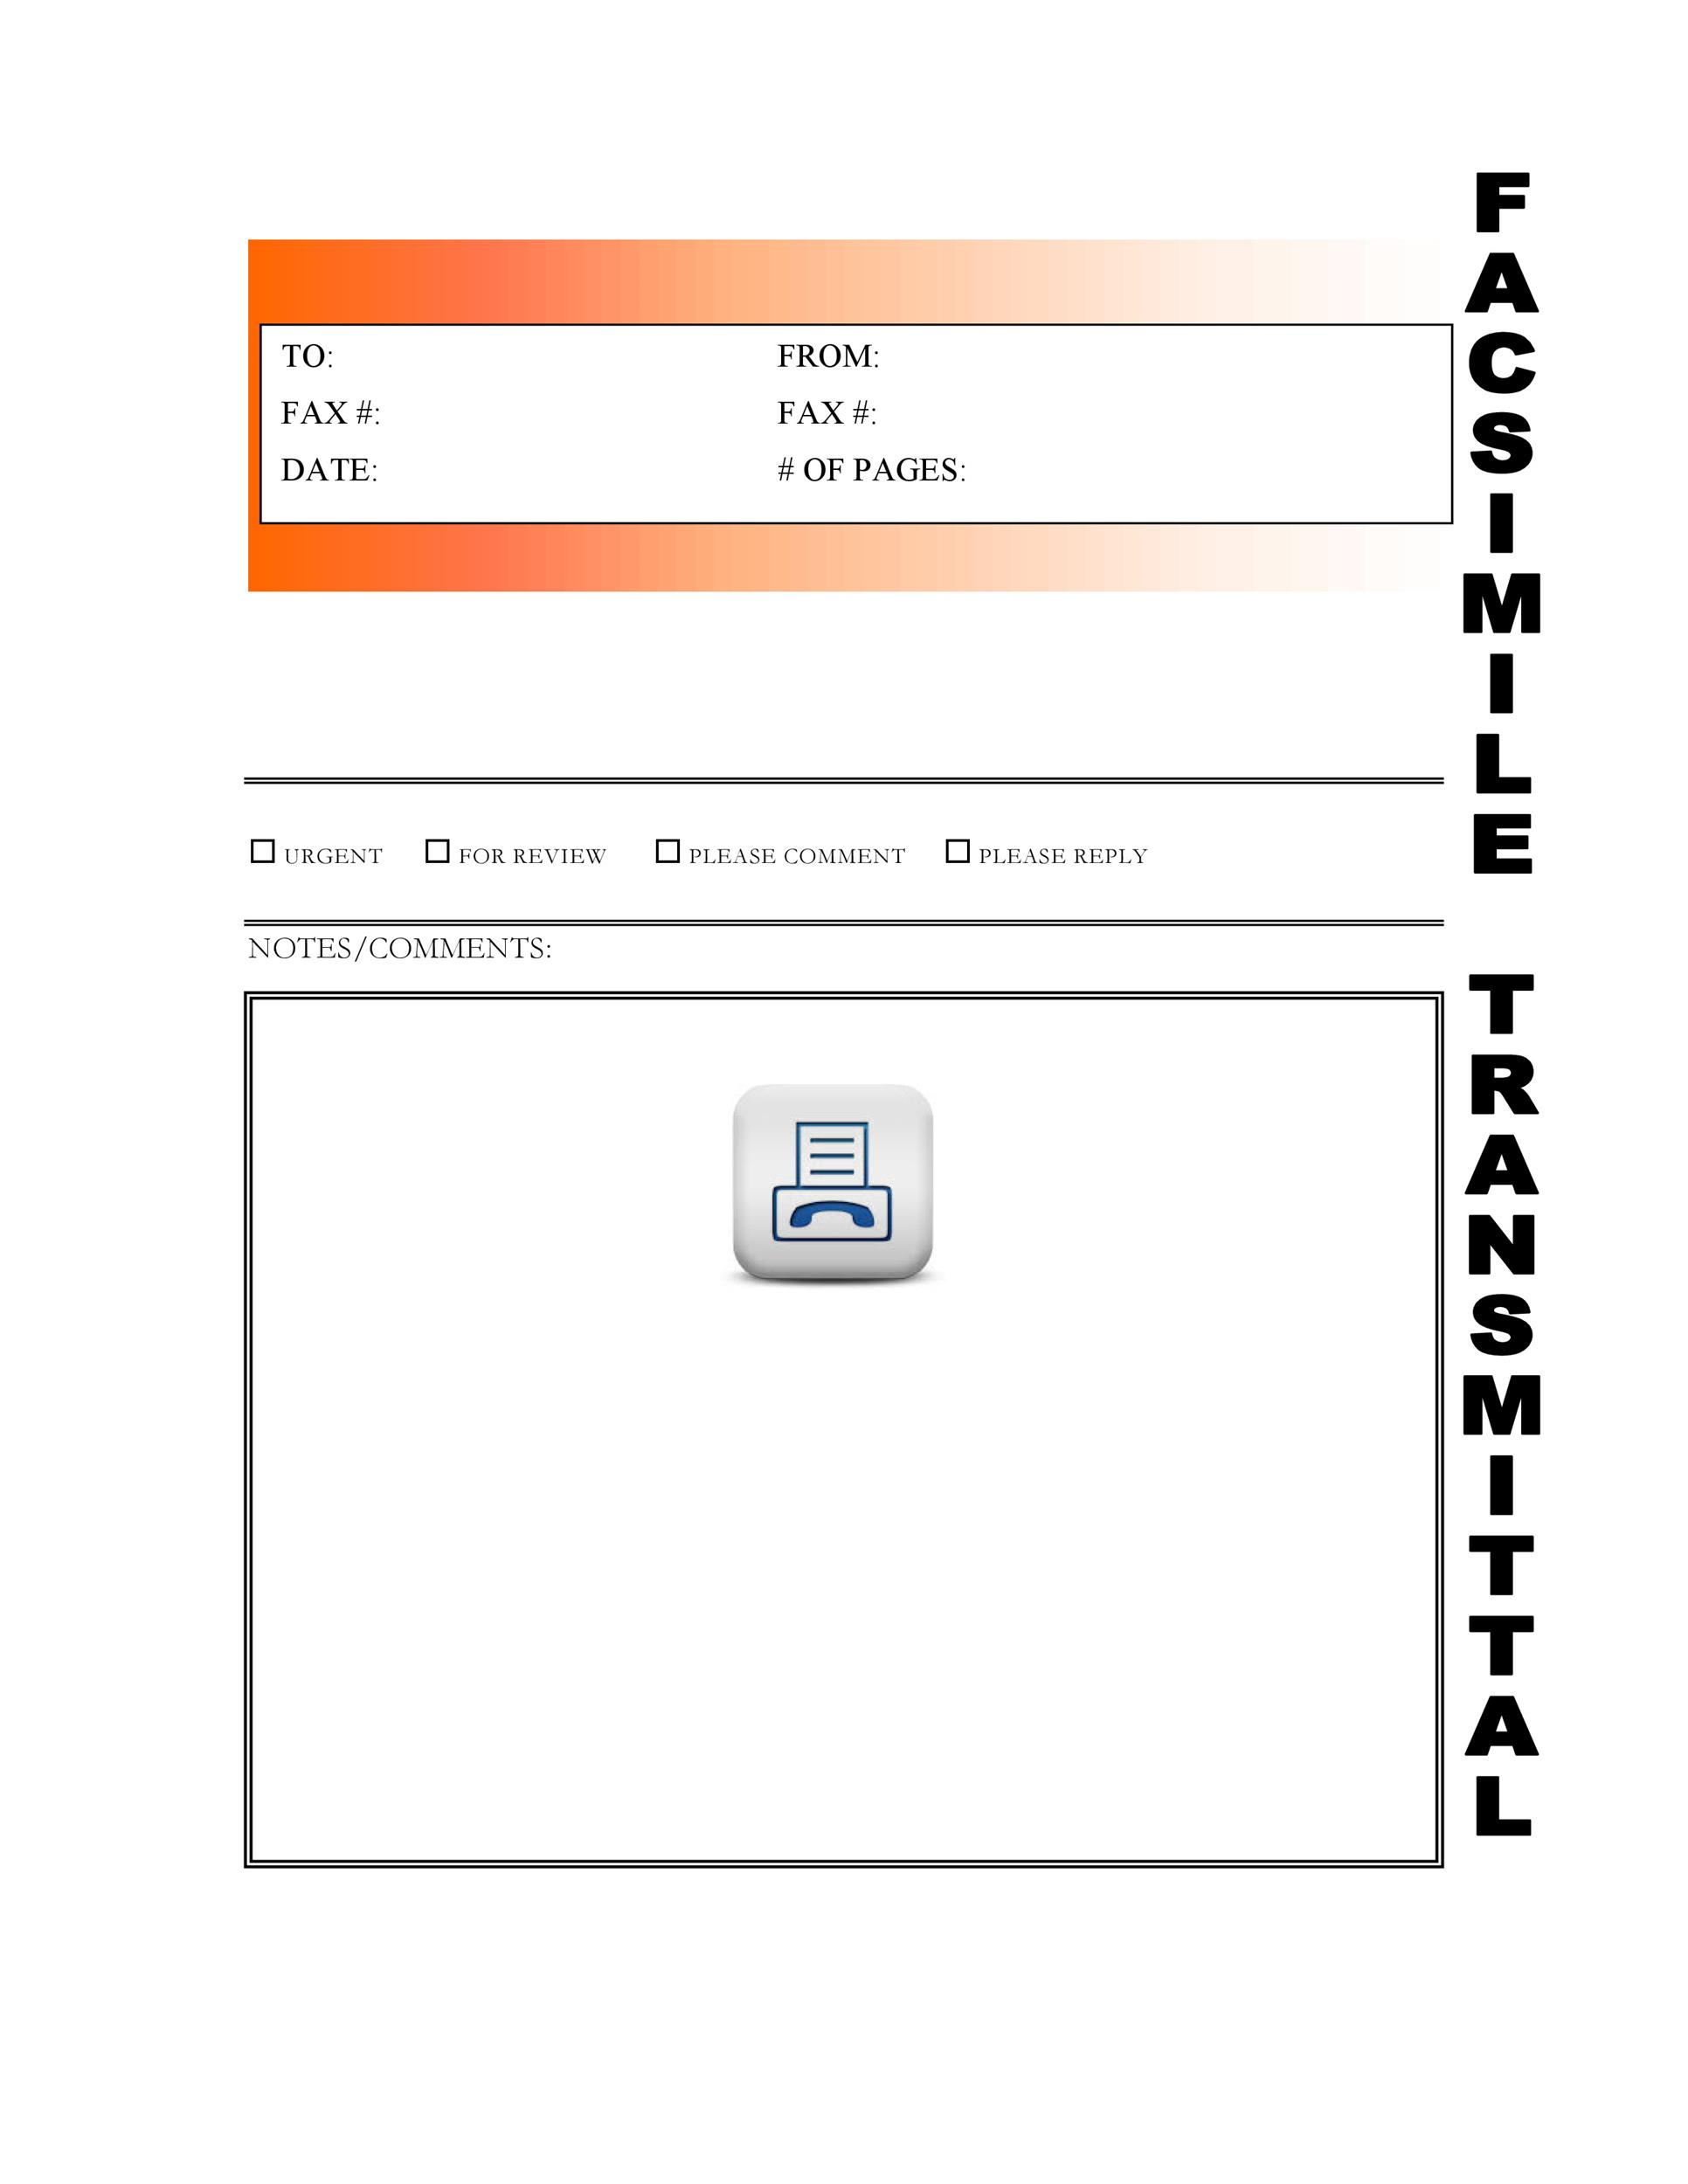 40 Printable Fax Cover Sheet Templates - Template Lab - Fax Letter Format Sample